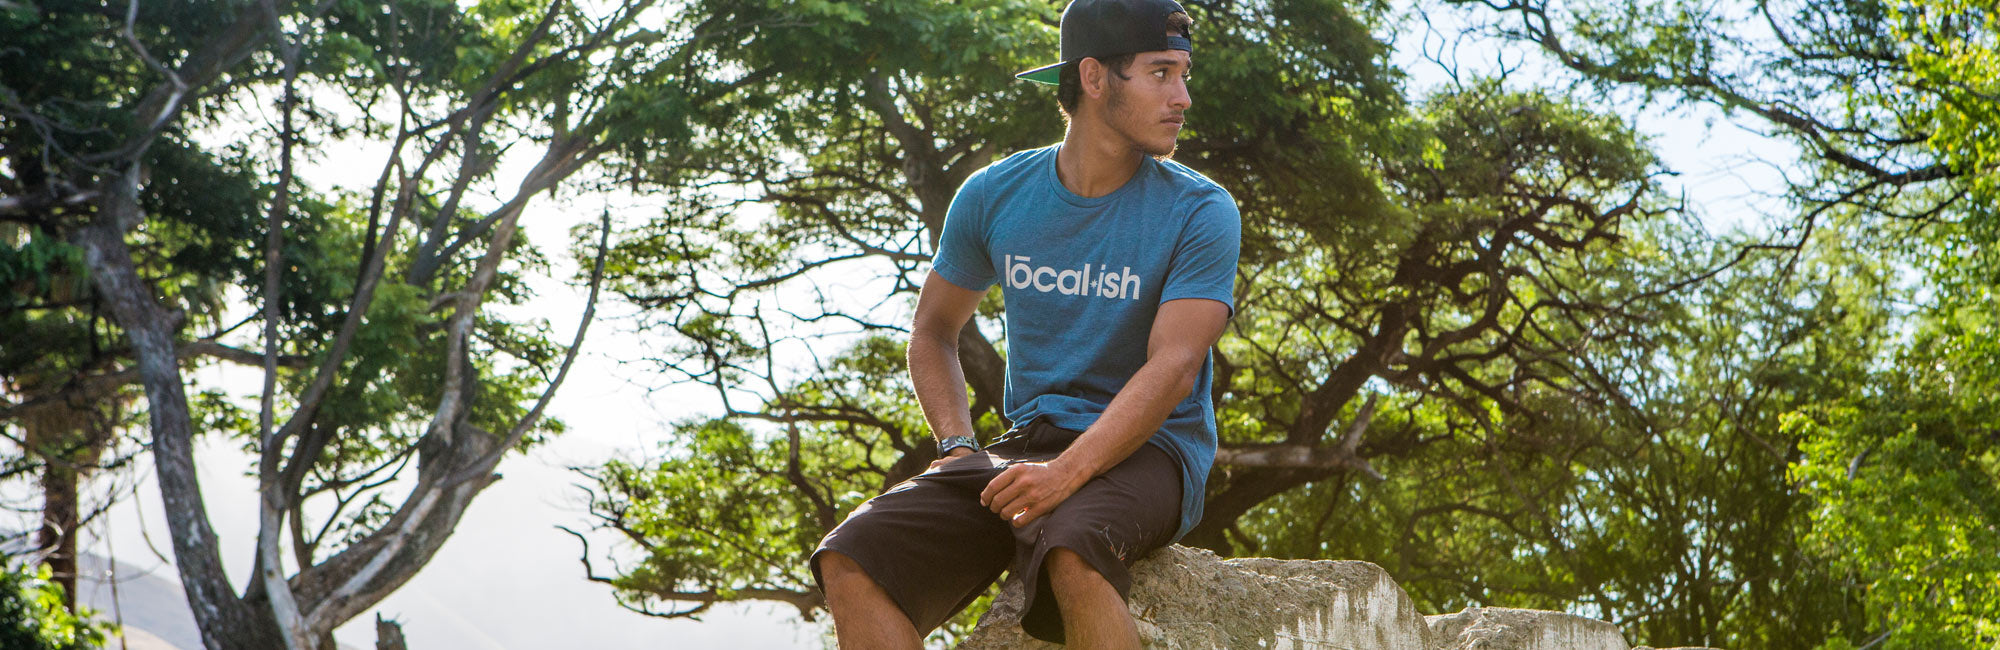 cool men's surf clothing apparel